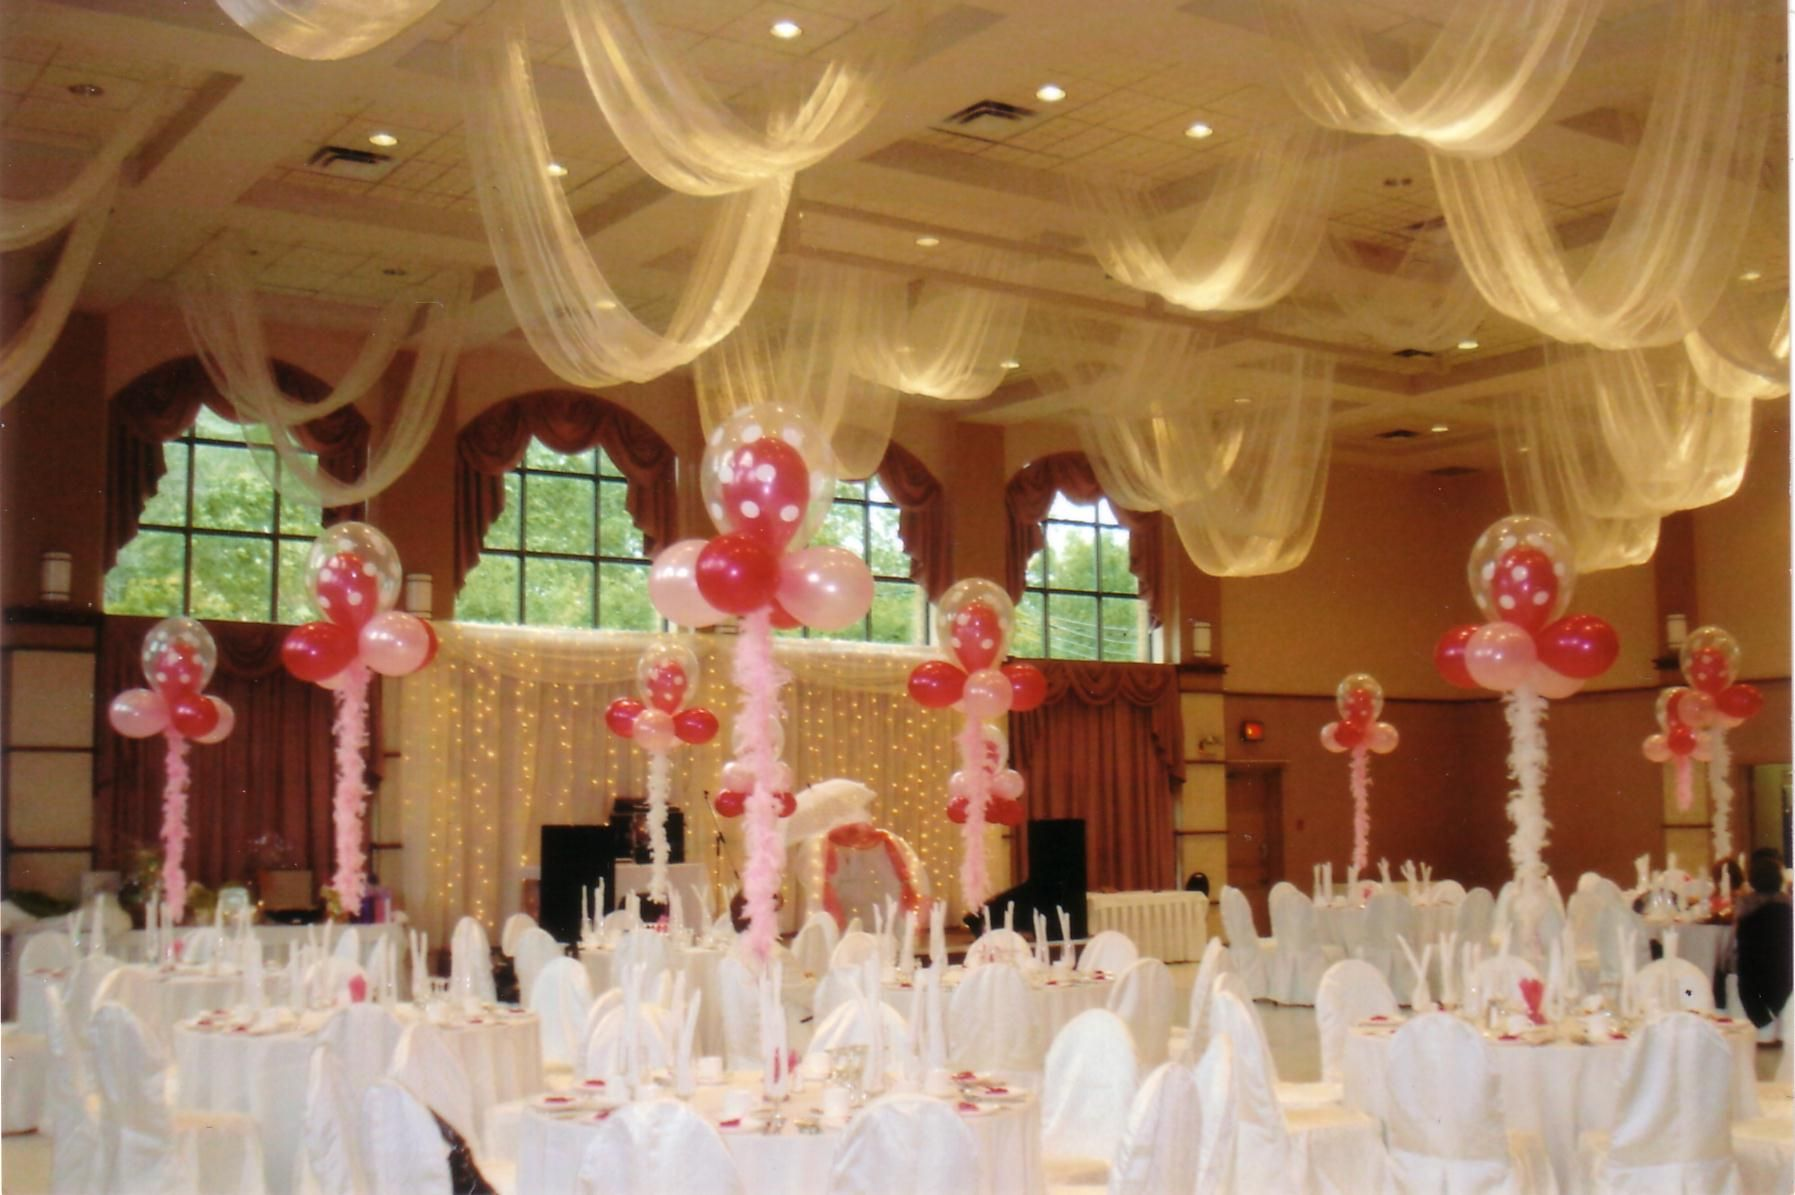 Balloon Decorations Rustic Party Interior Red Pink Balloons On The